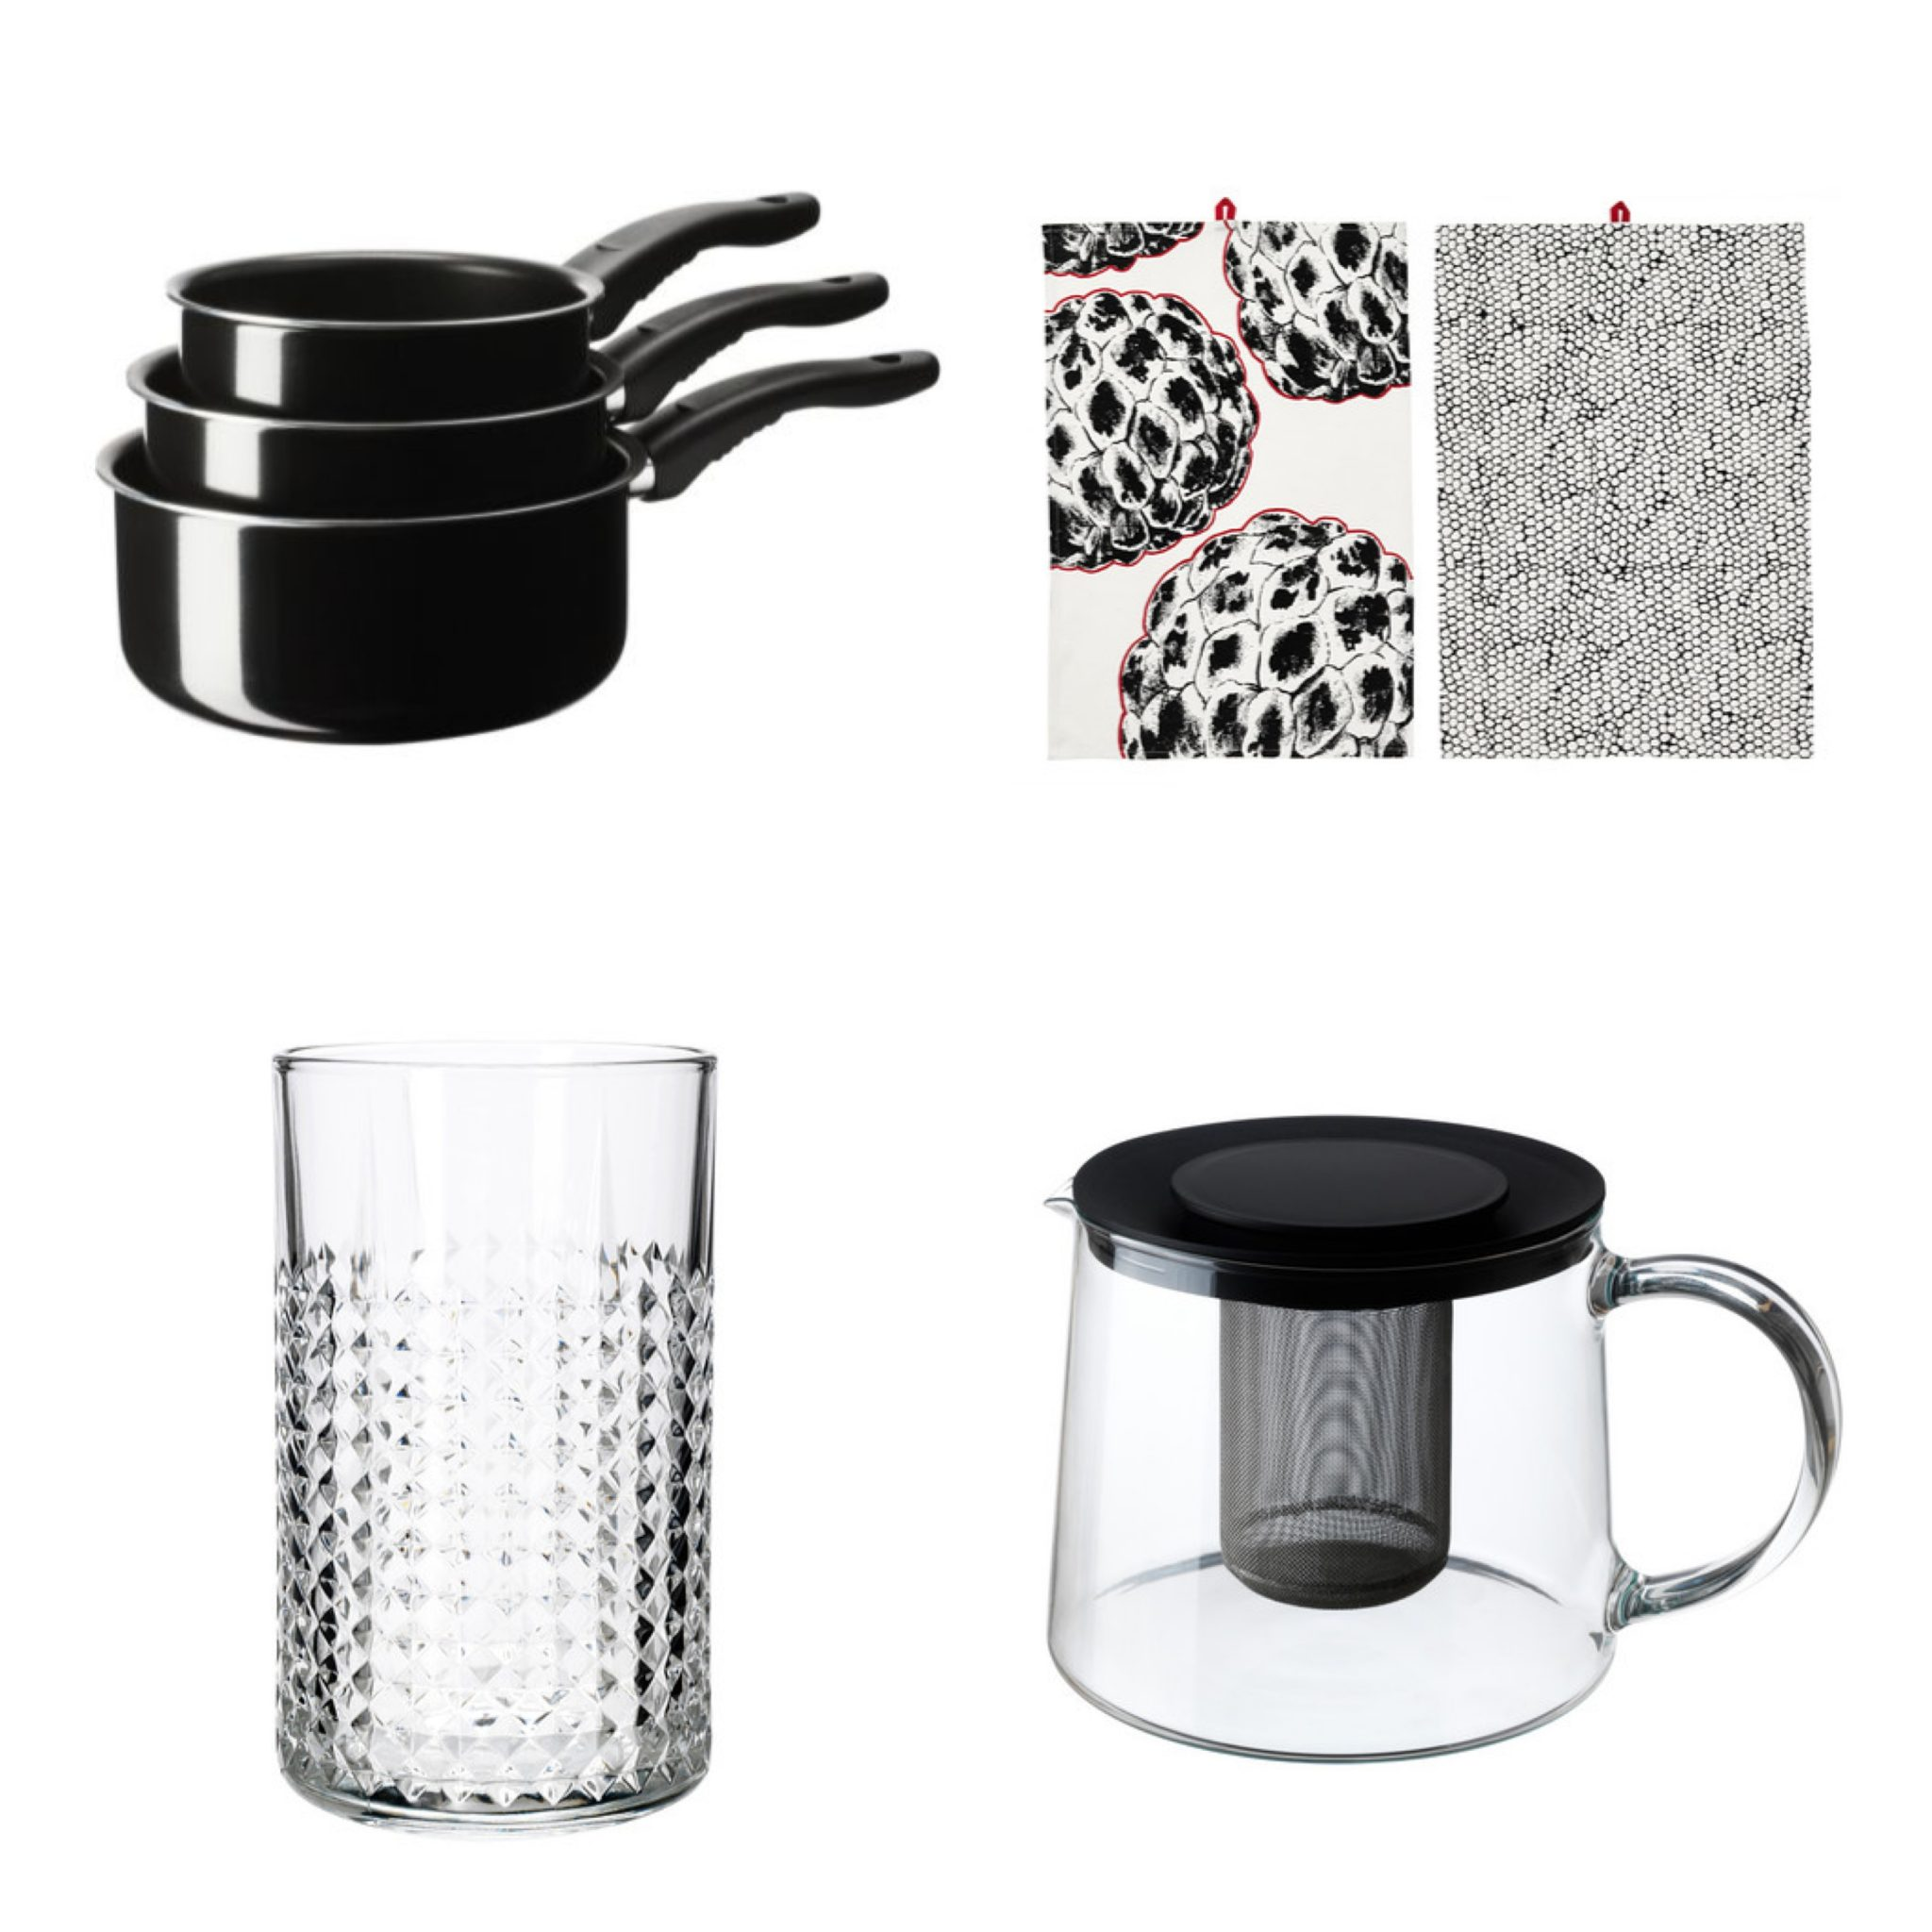 20 amazing kitchen accessories from IKEA - The Interiors